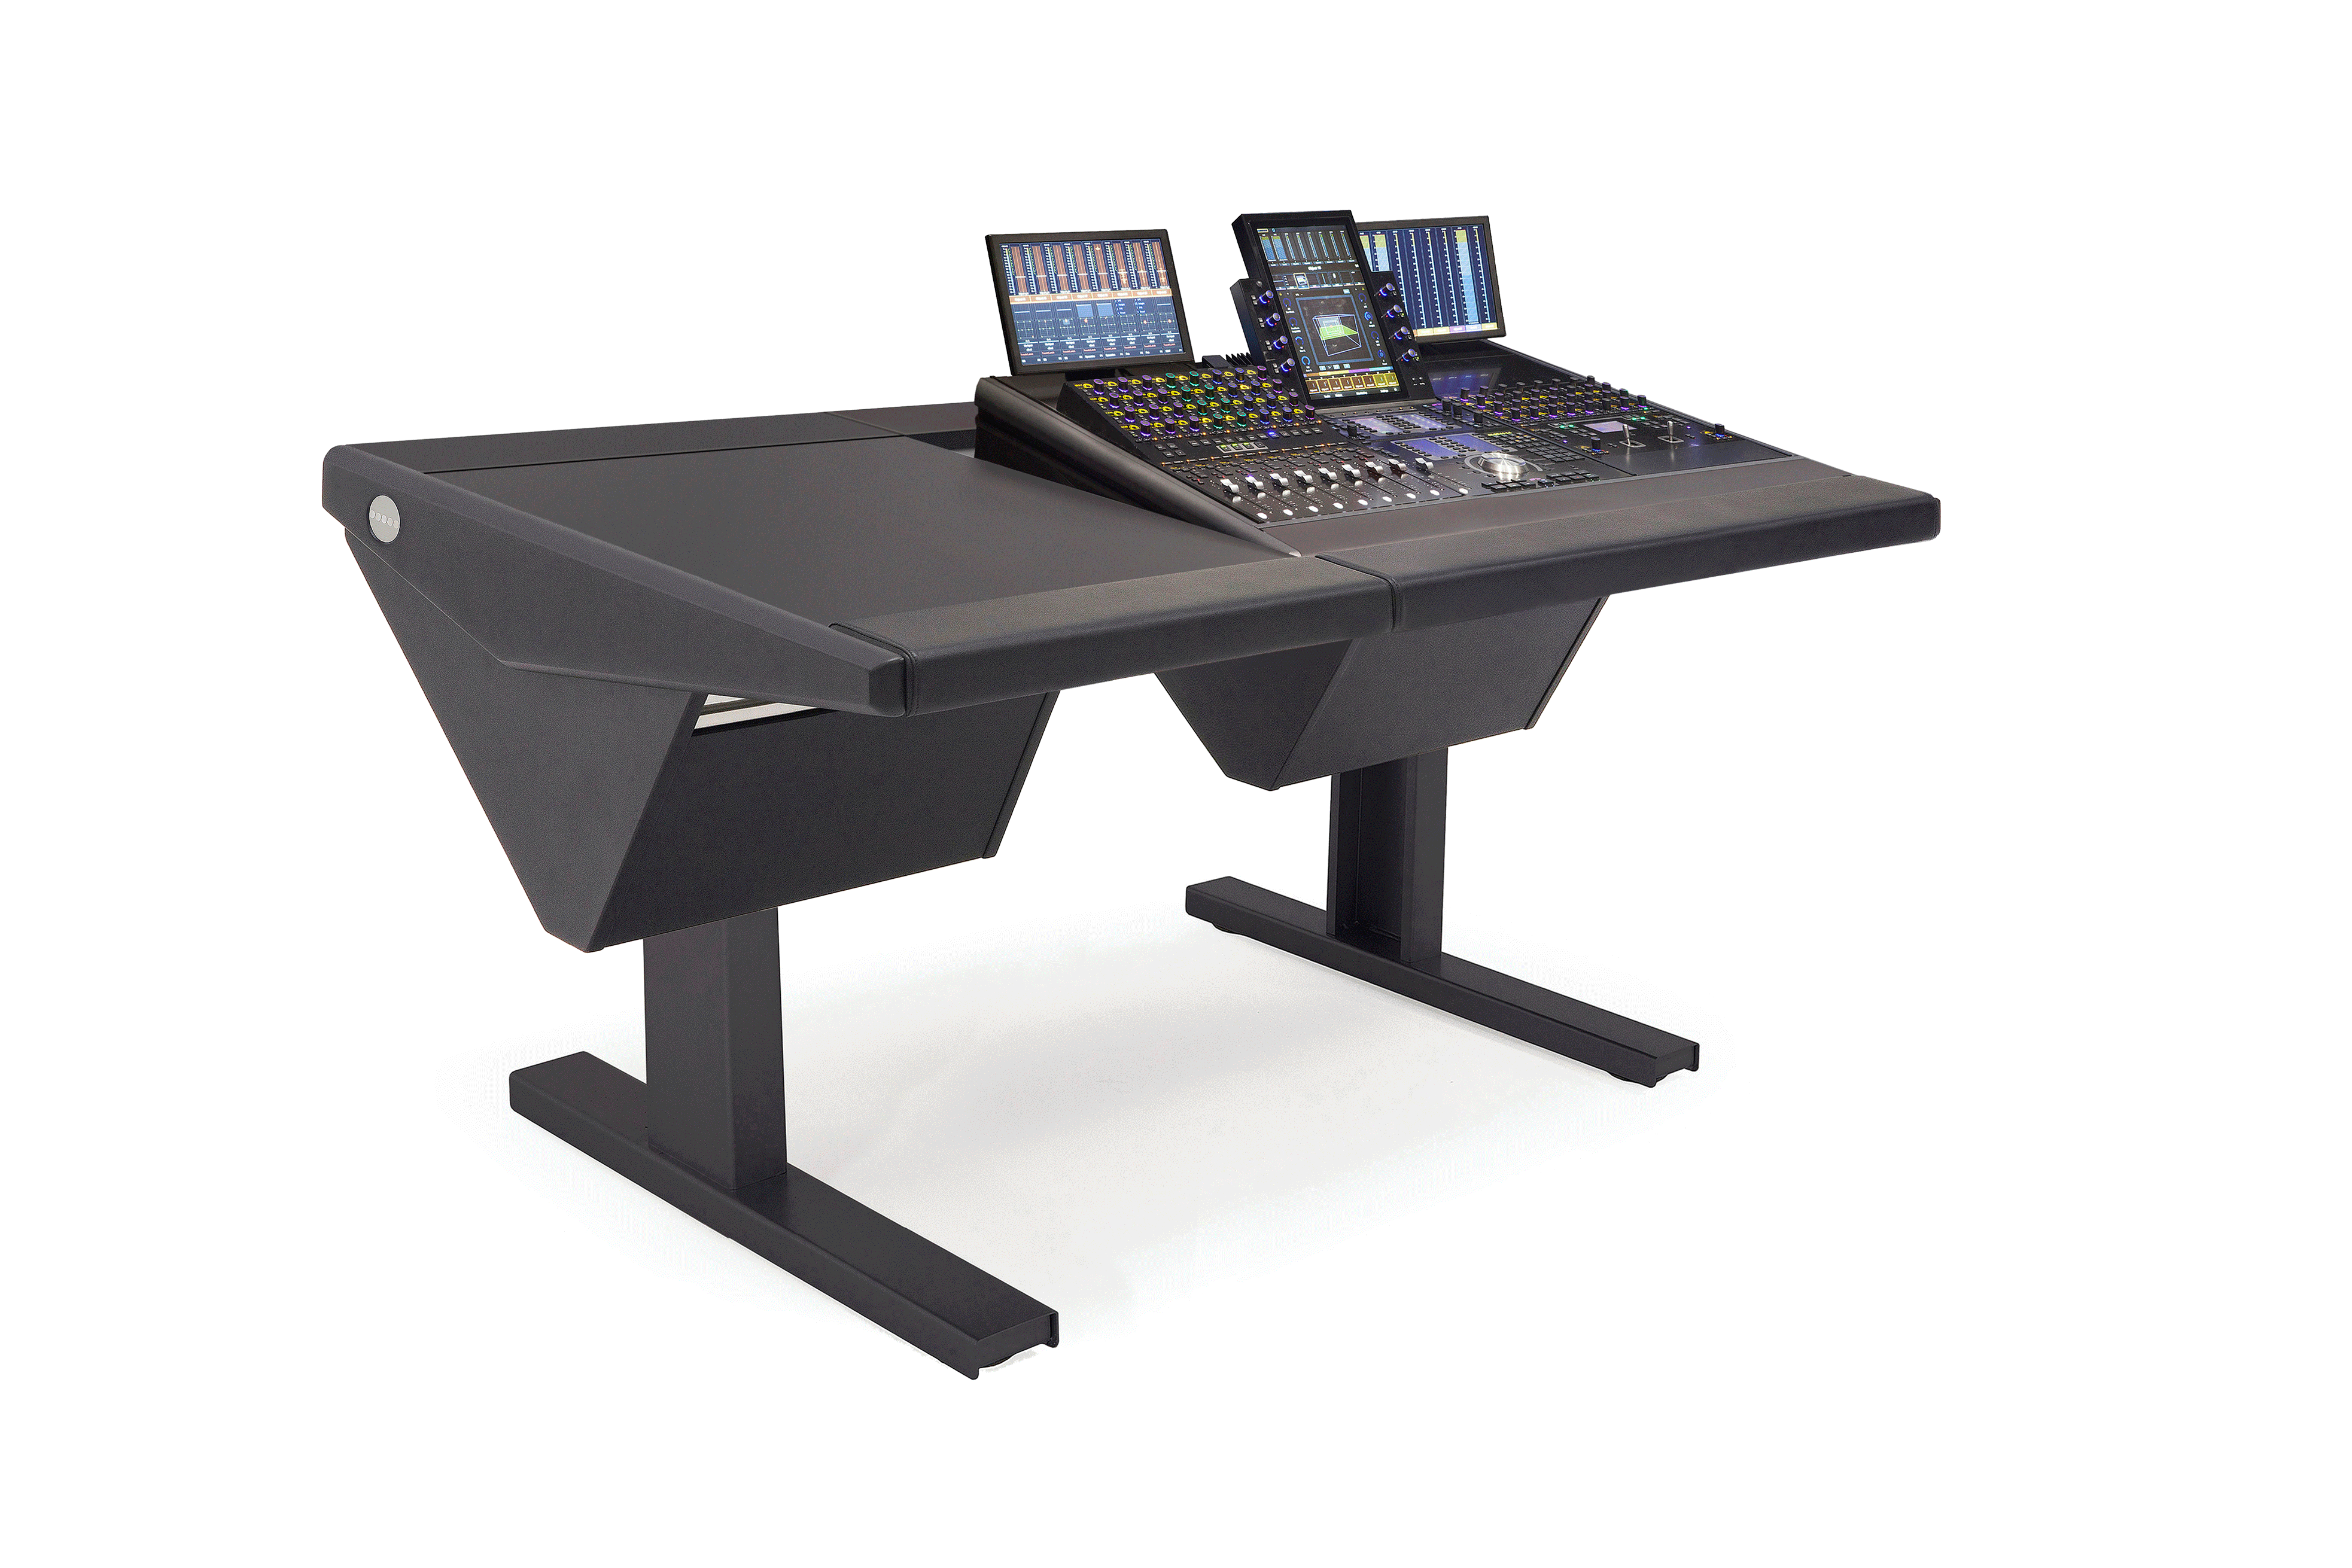 S4 - 3 Foot Wide Base System with Desk (L)